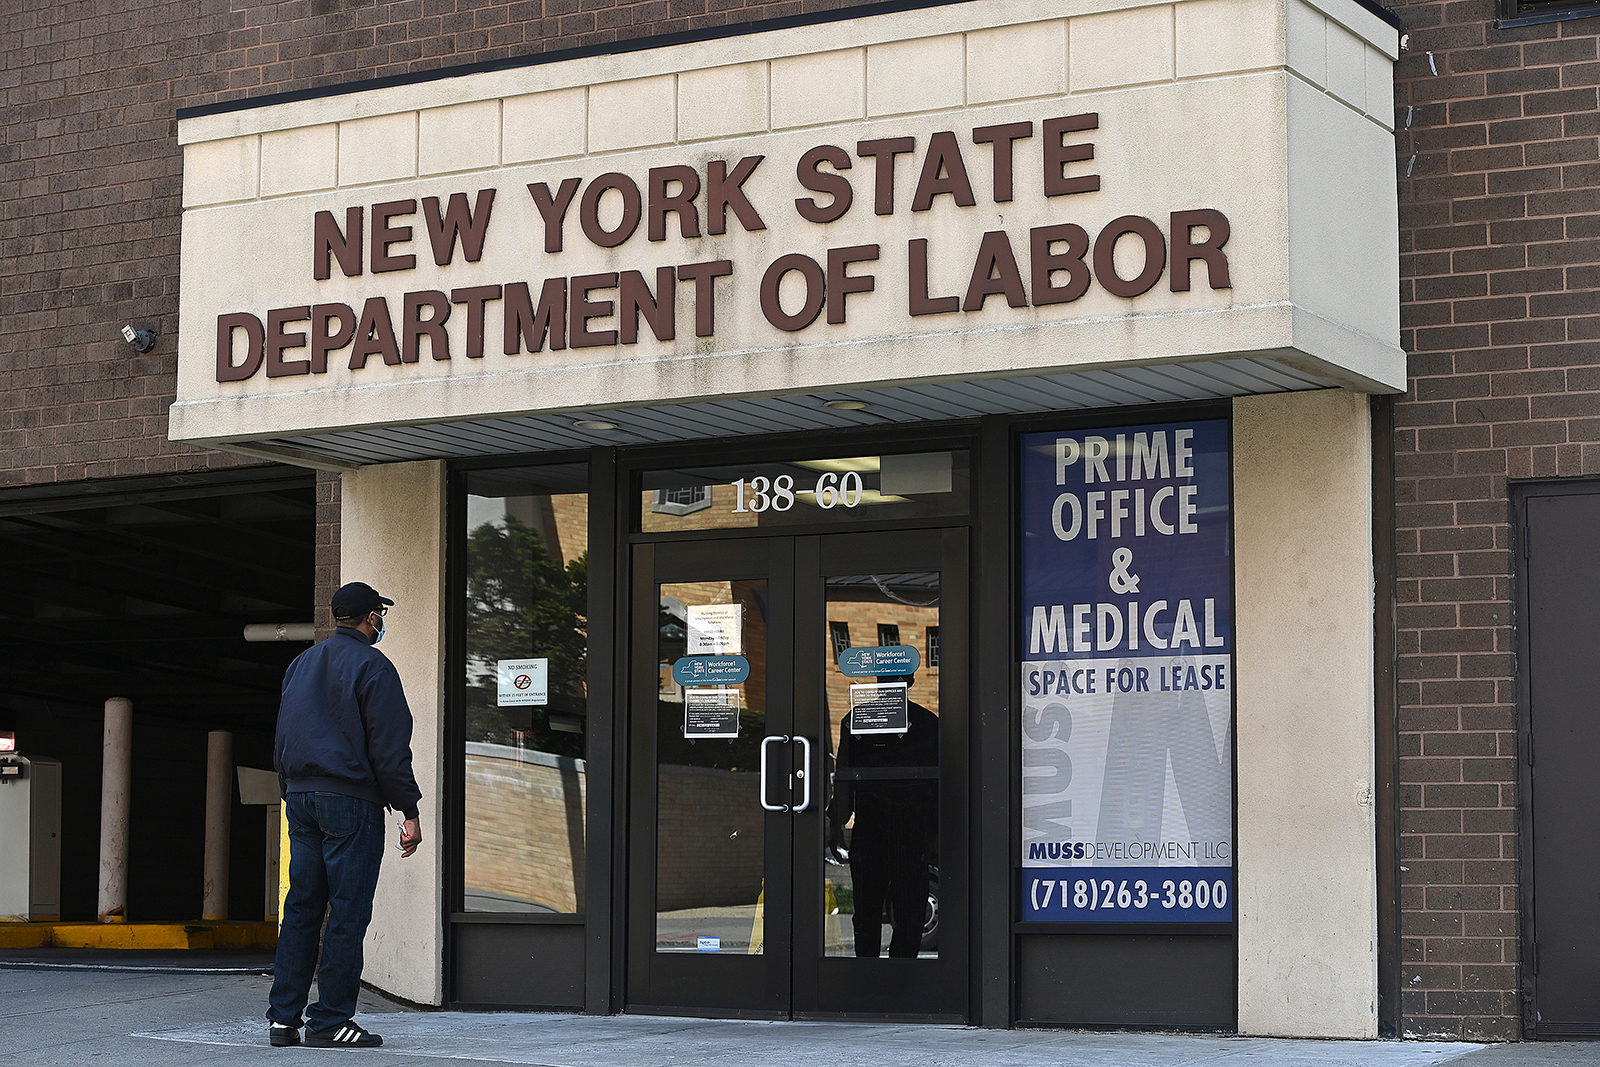 A man reads a sign on the door of the New York State Department of Labor offices in the New York City borough of Queens, on Thursday, April 2.